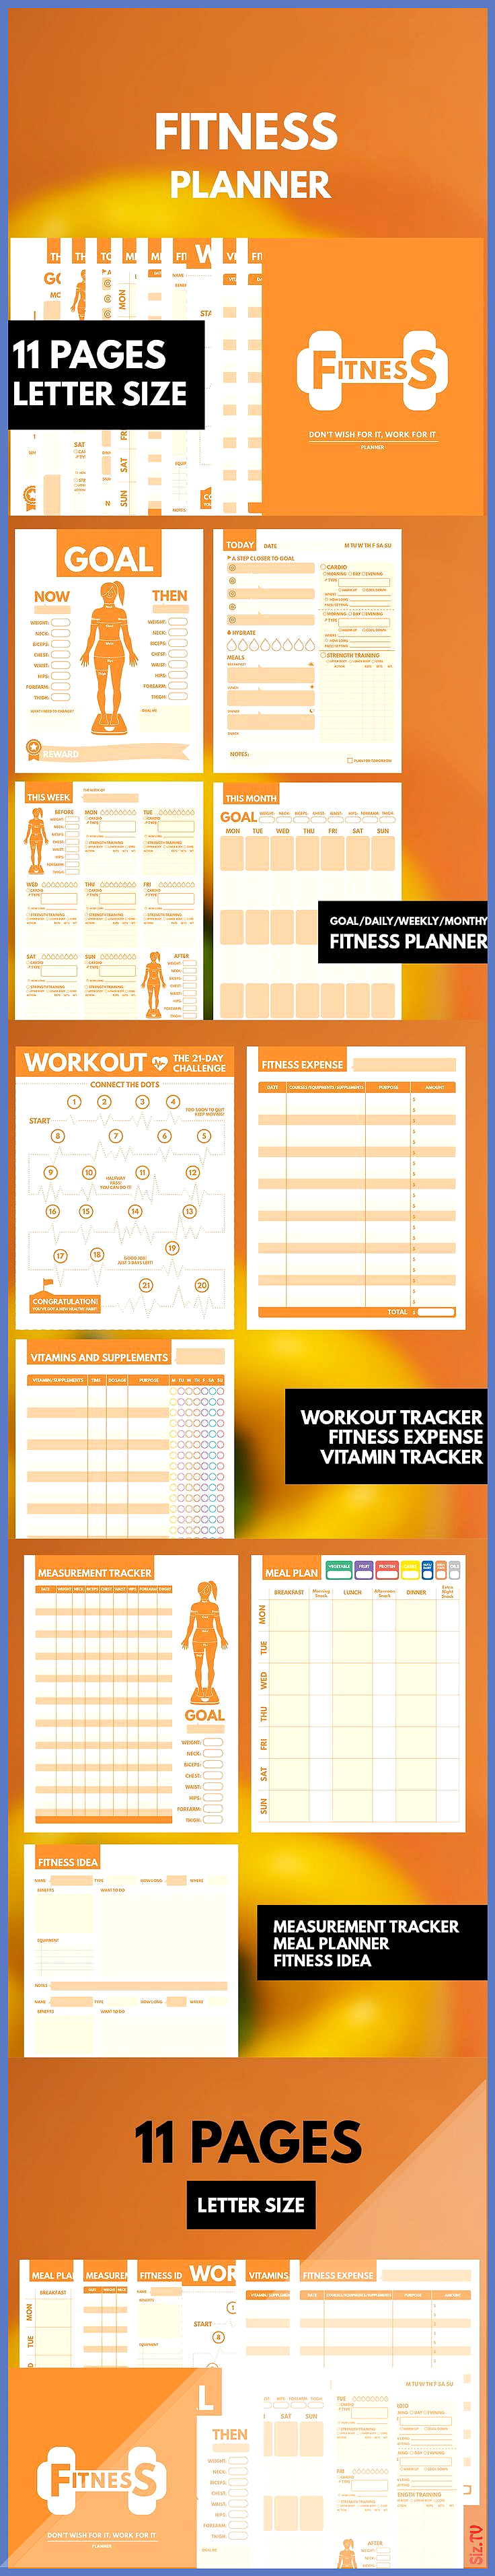 Fitness Planner Printable Letter Workout Planner Fitness Journal Printable Health Planner Exercise P...